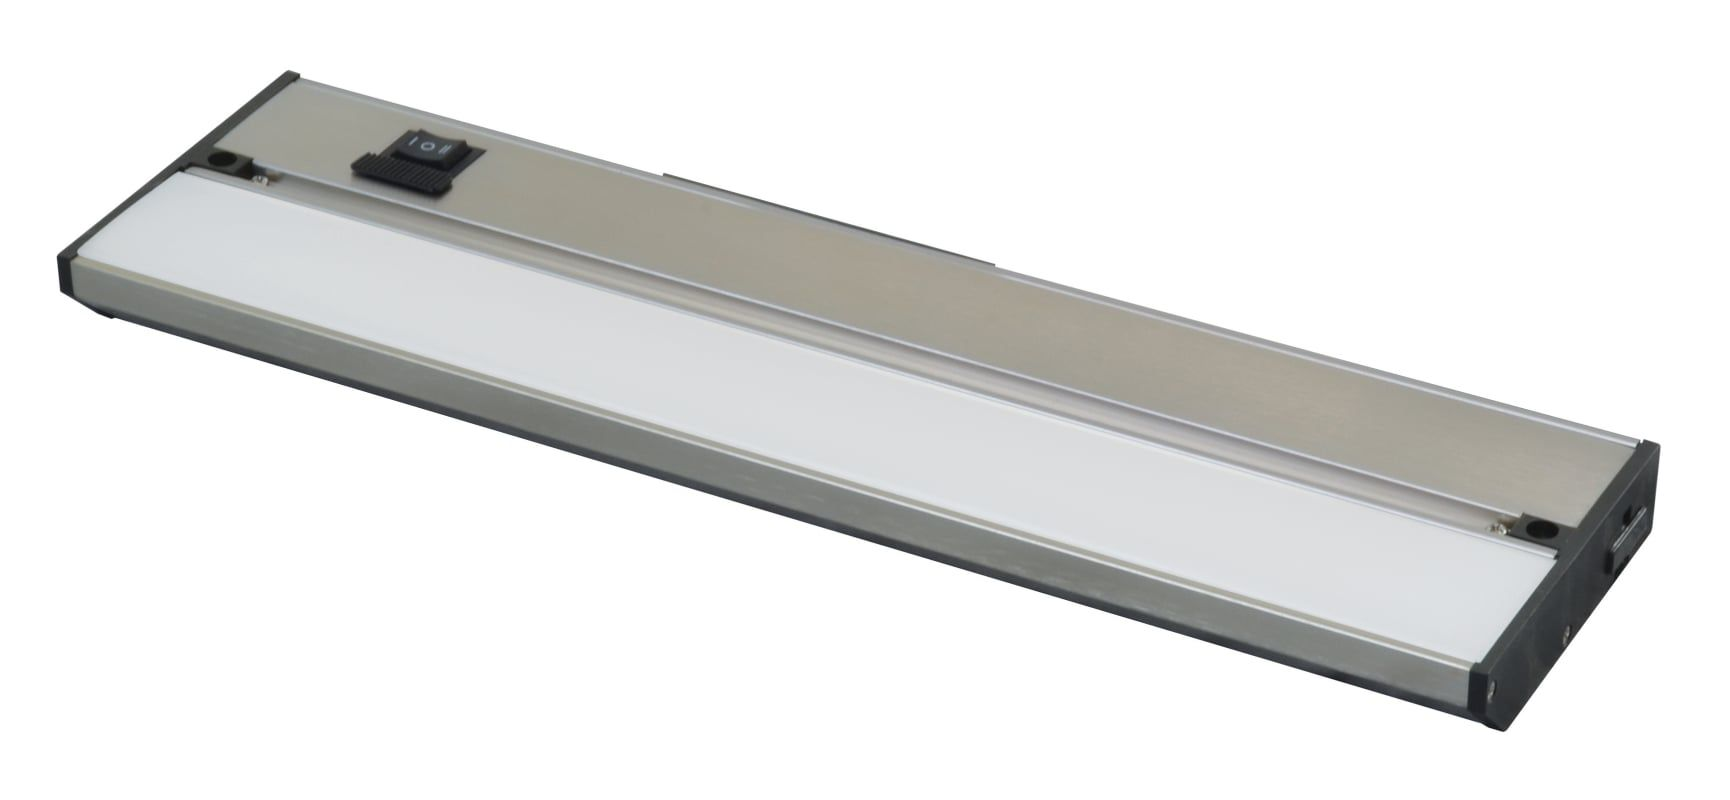 Afx Nllp40 Led Under Cabinet Lighting Under Cabinet Lighting Under Cabinet